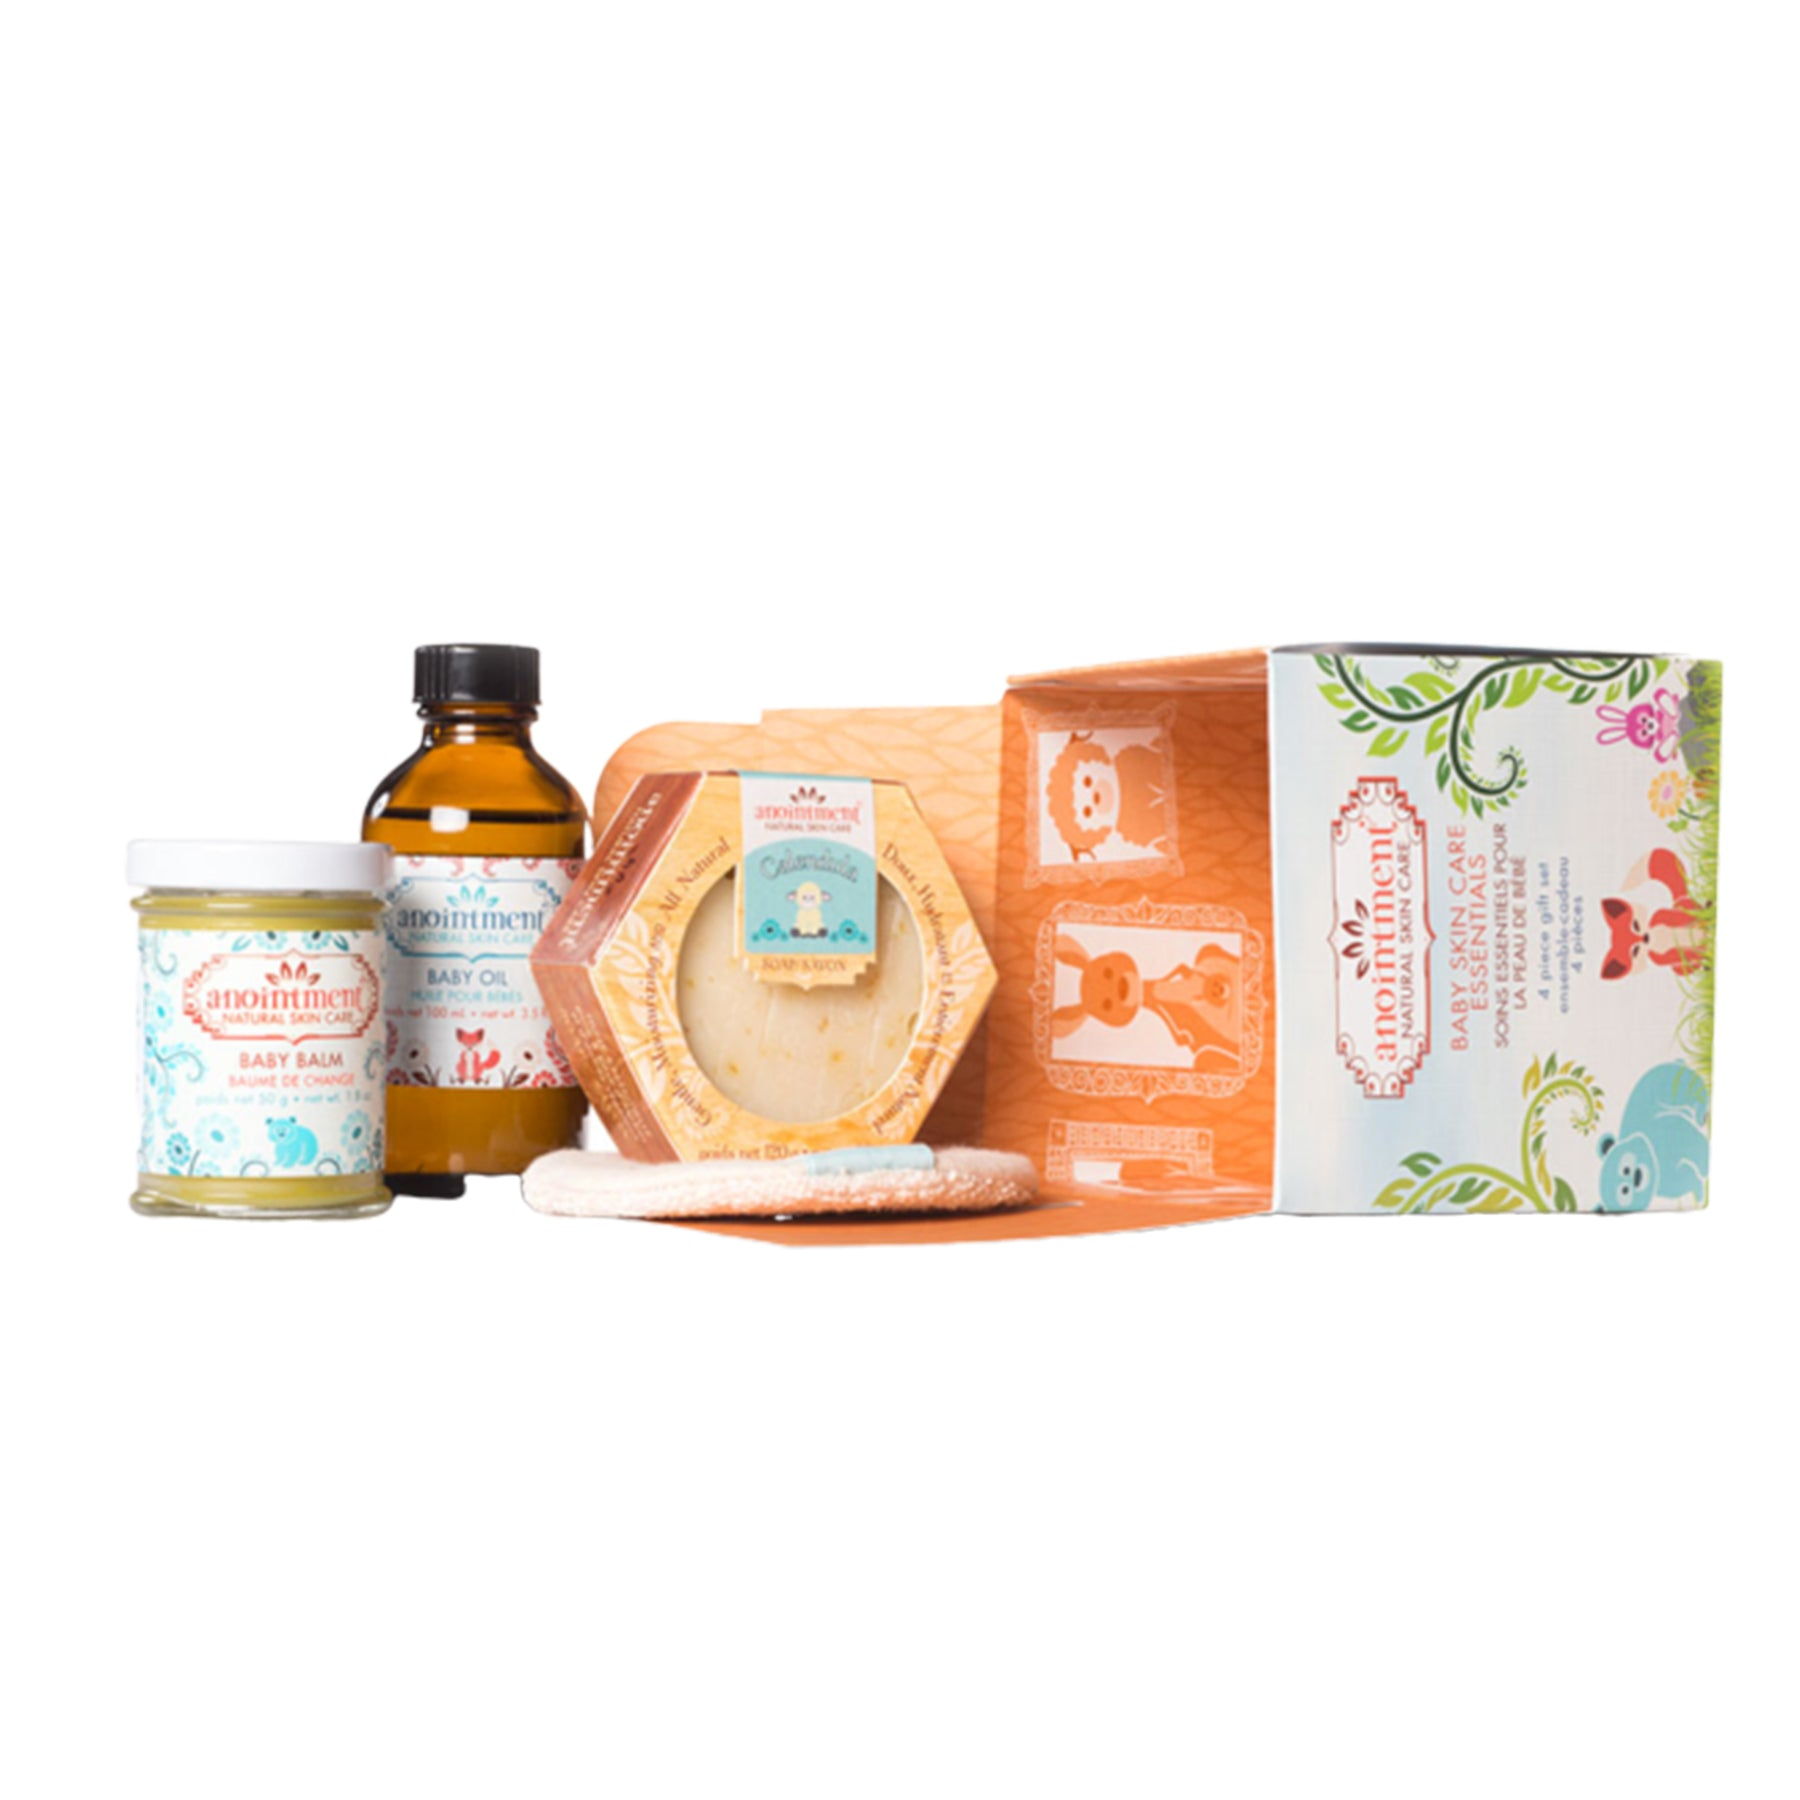 Anointment - Baby Skin Care Essentials Gift Set